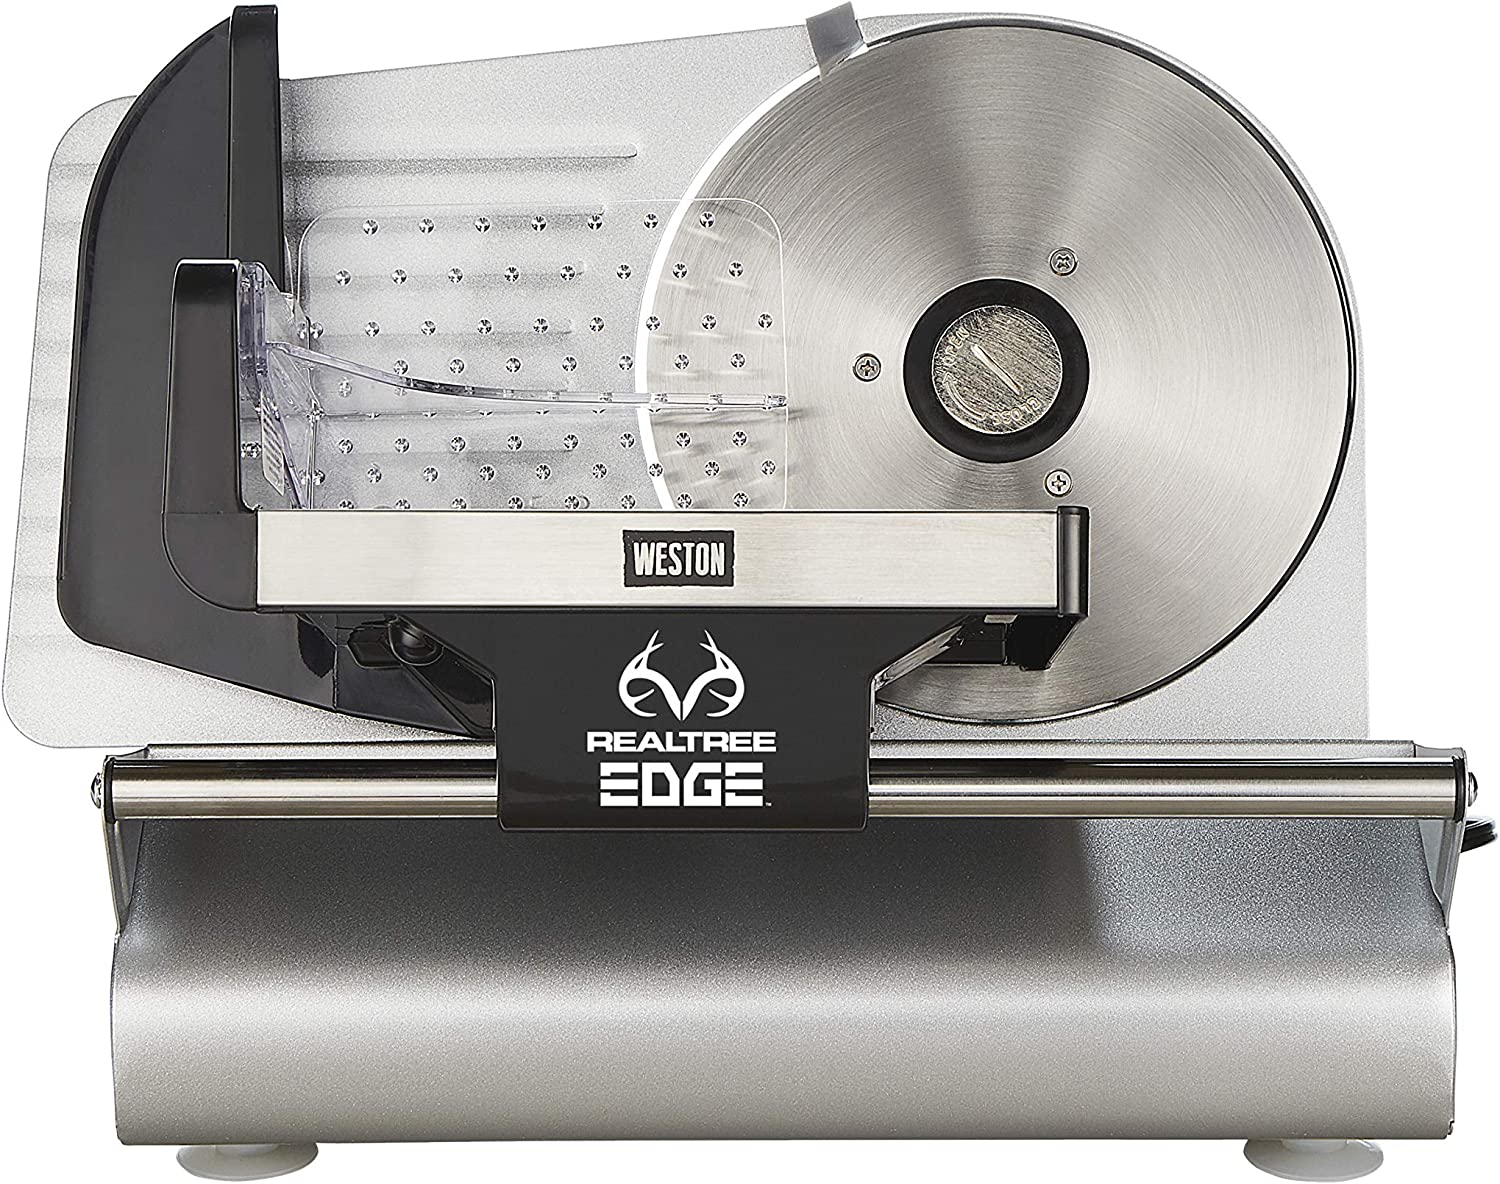 "Weston Realtree Edge 7 1/2"" 200 Watt Meat Slicer, Stainless Steel , 200W"